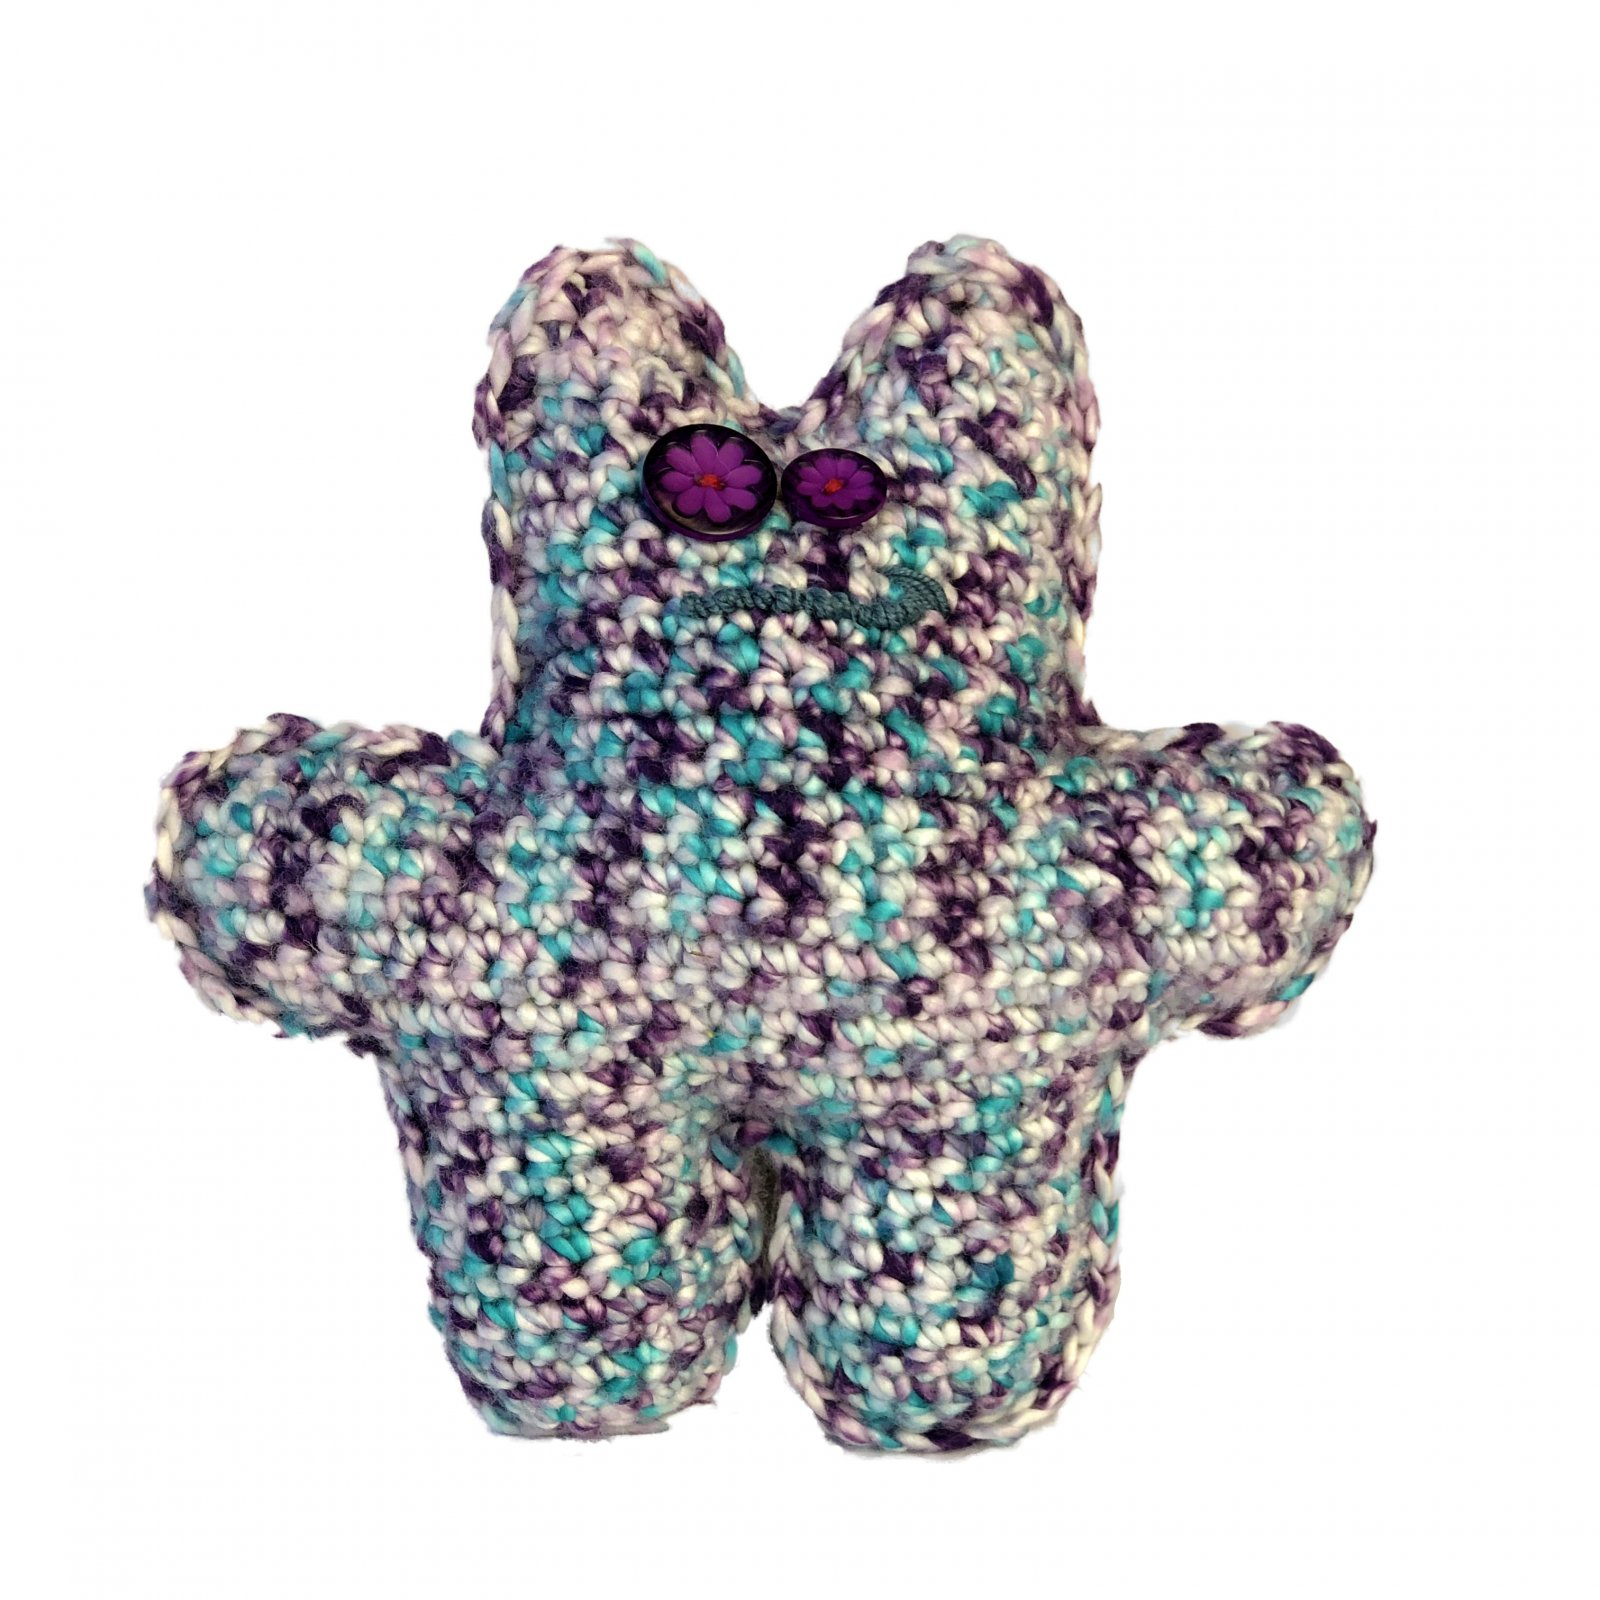 Monster Along - Knit and Crochet patterns  - free .pdf pattern download